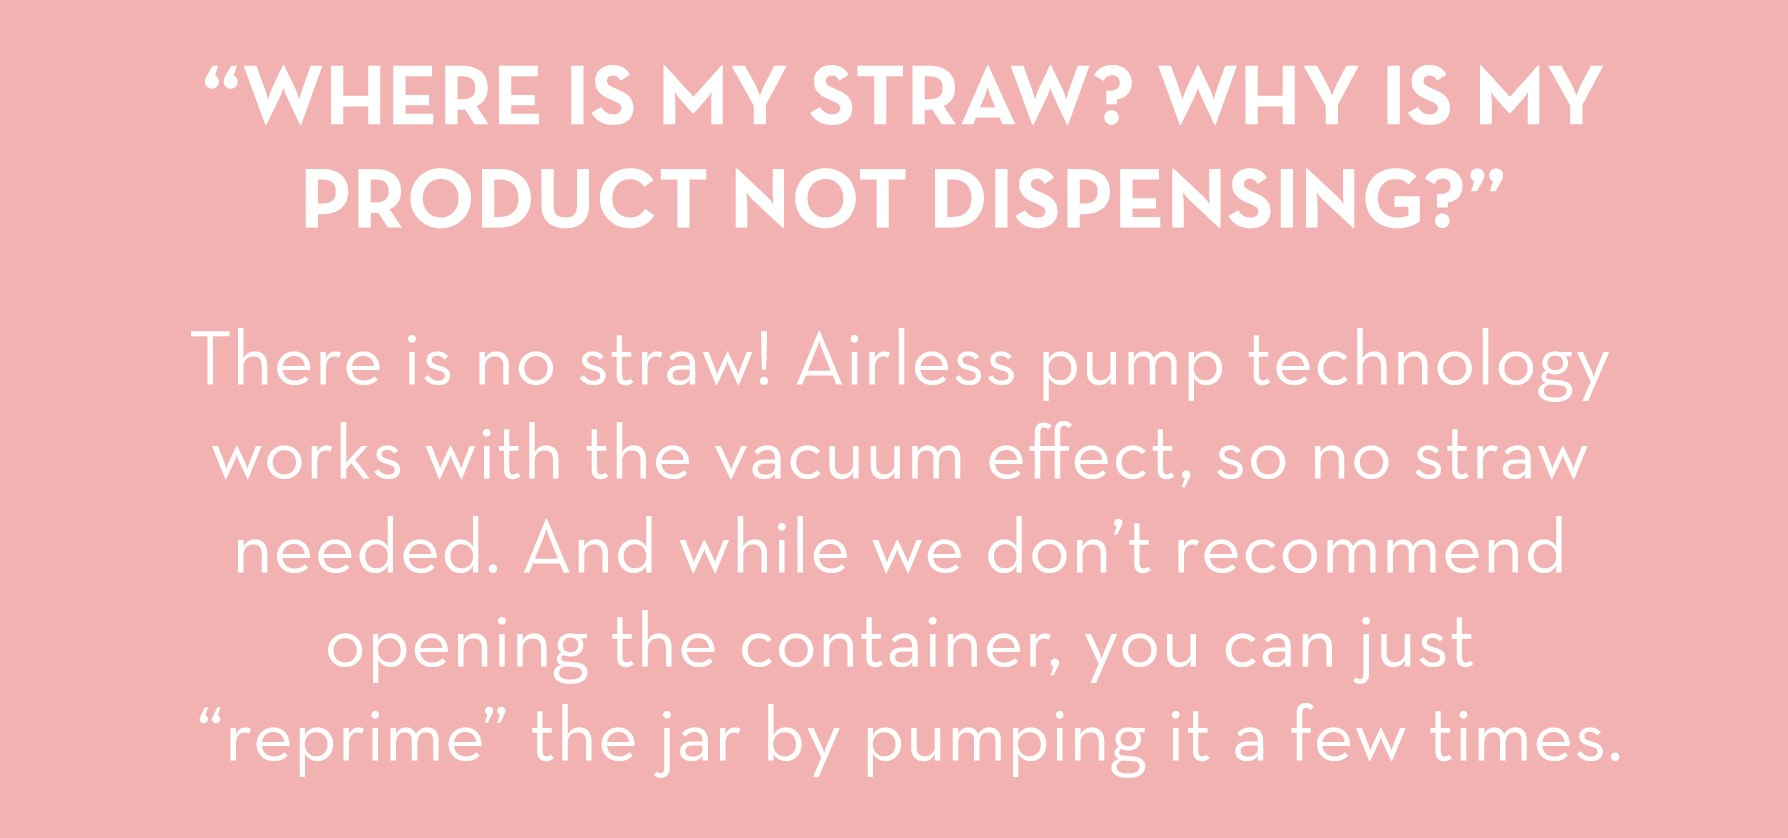 Airless Pump Missing